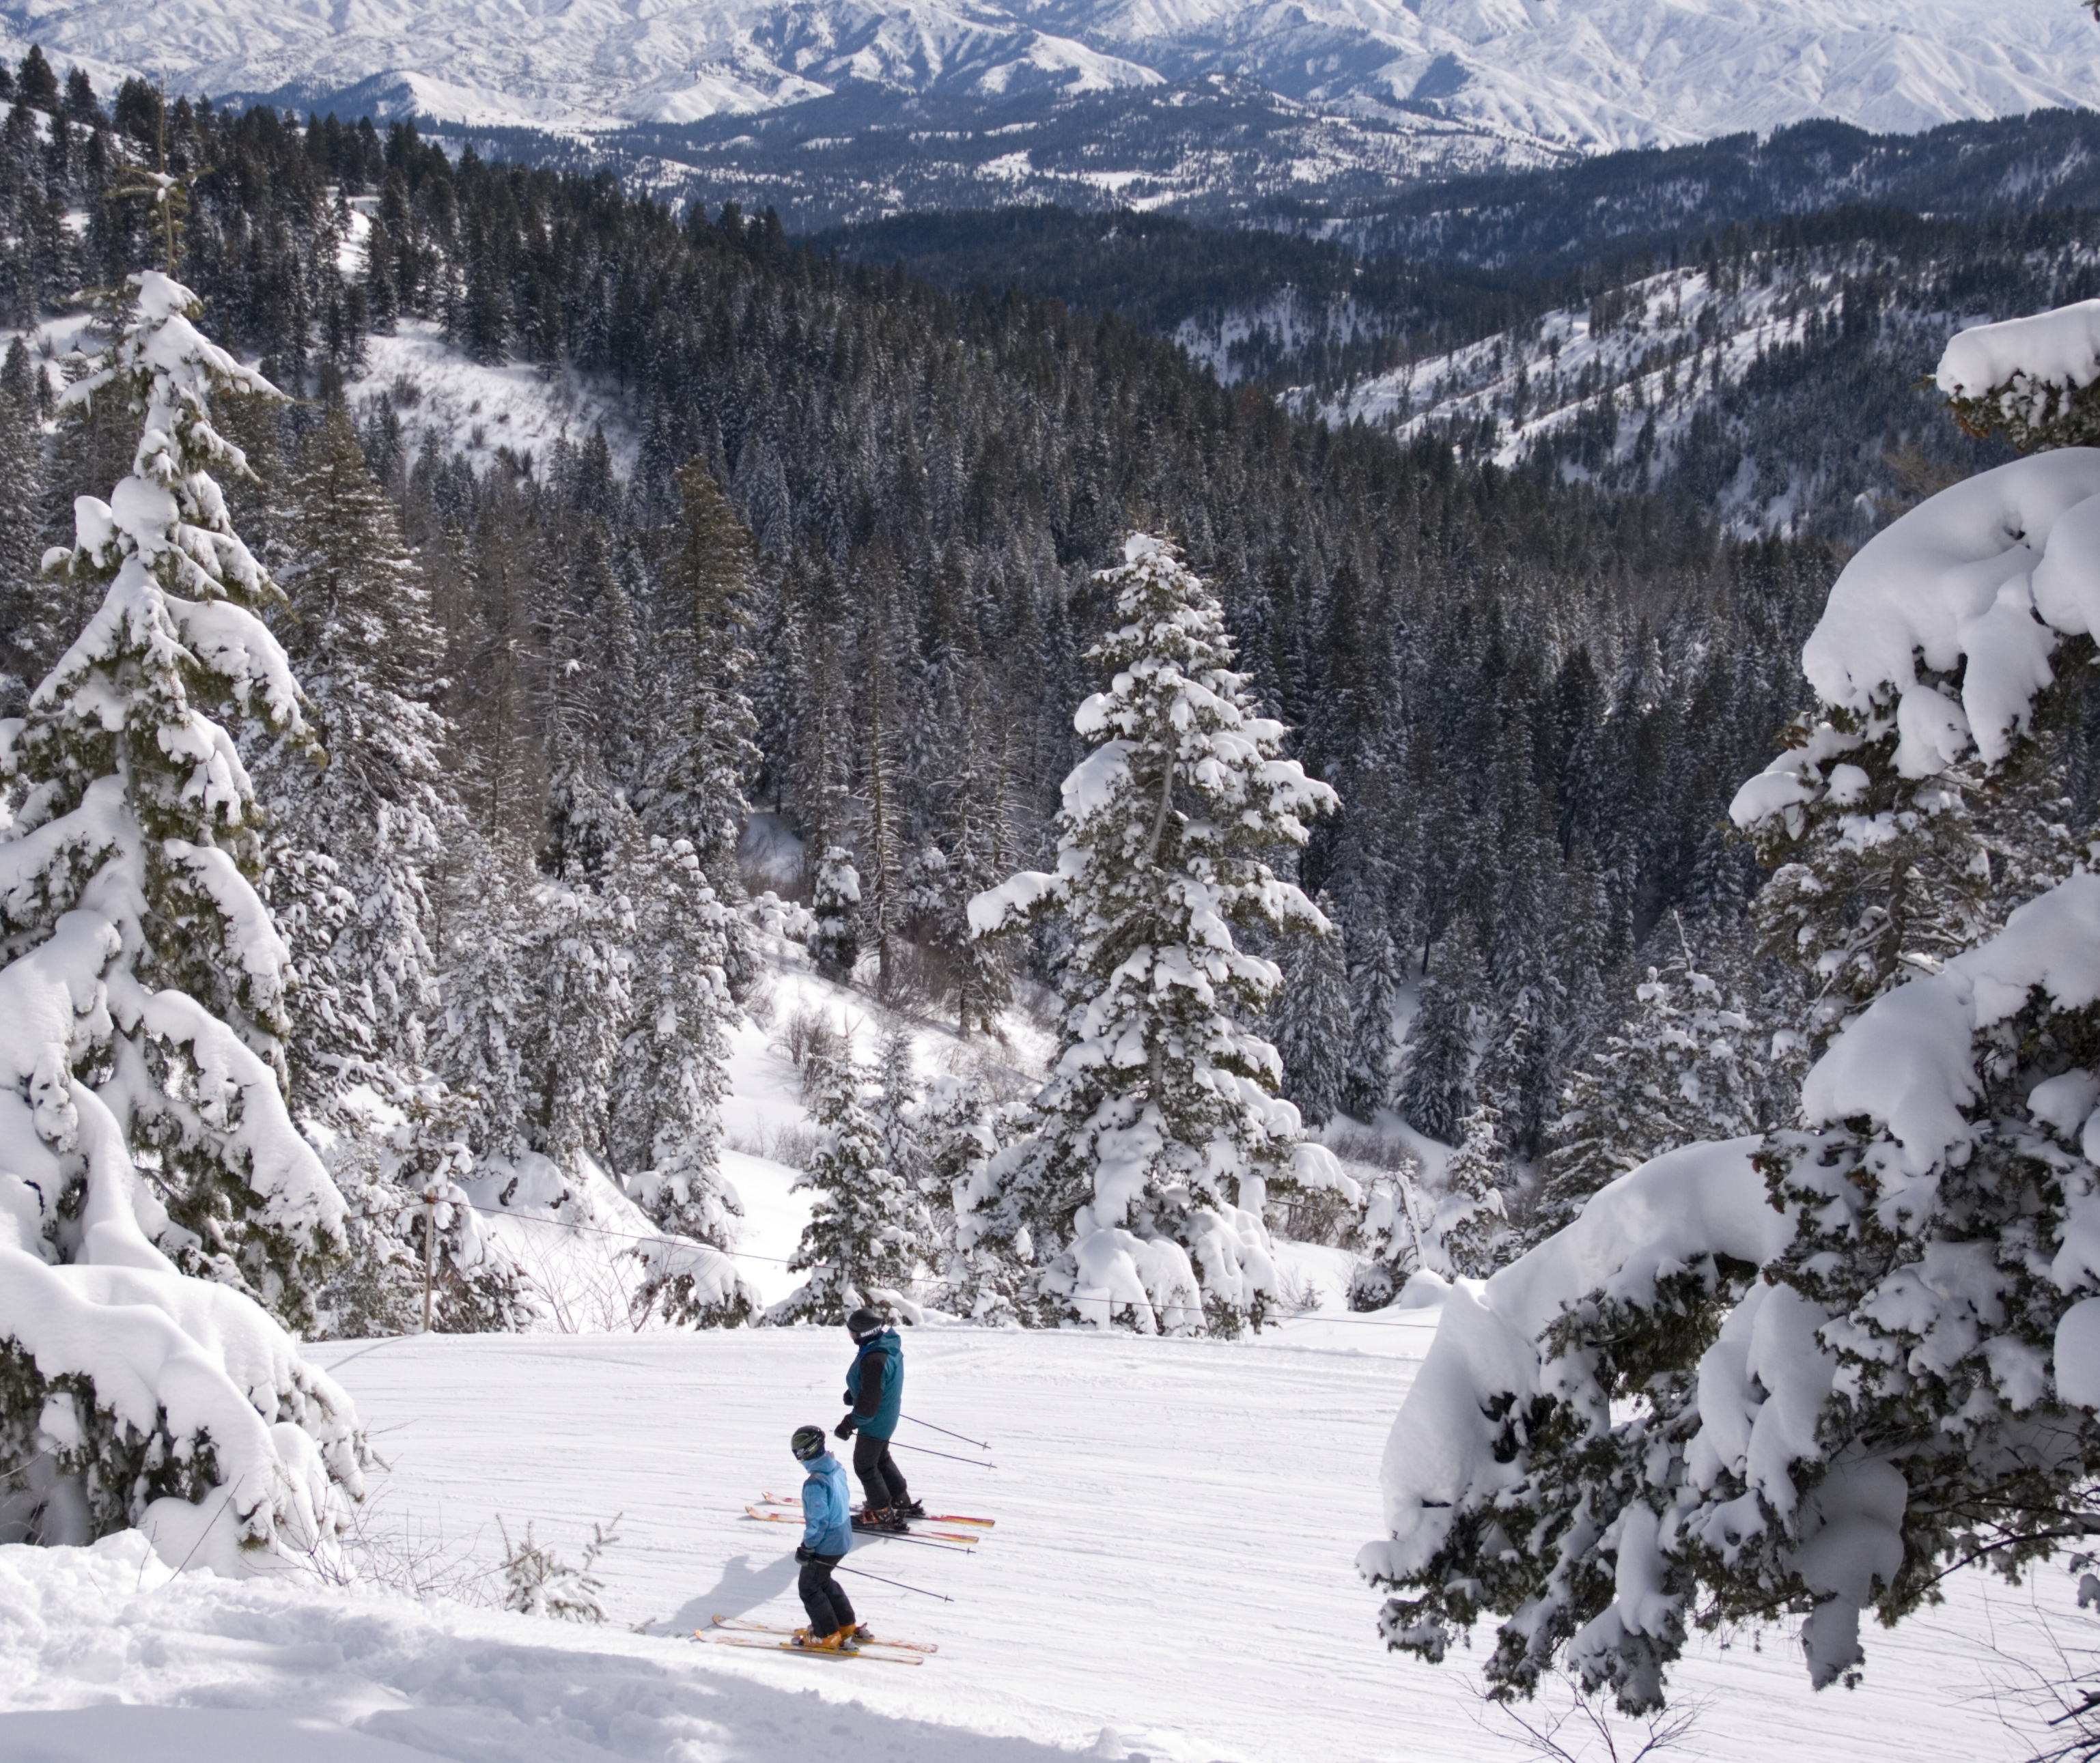 Skiers headed down a run filled with powder.